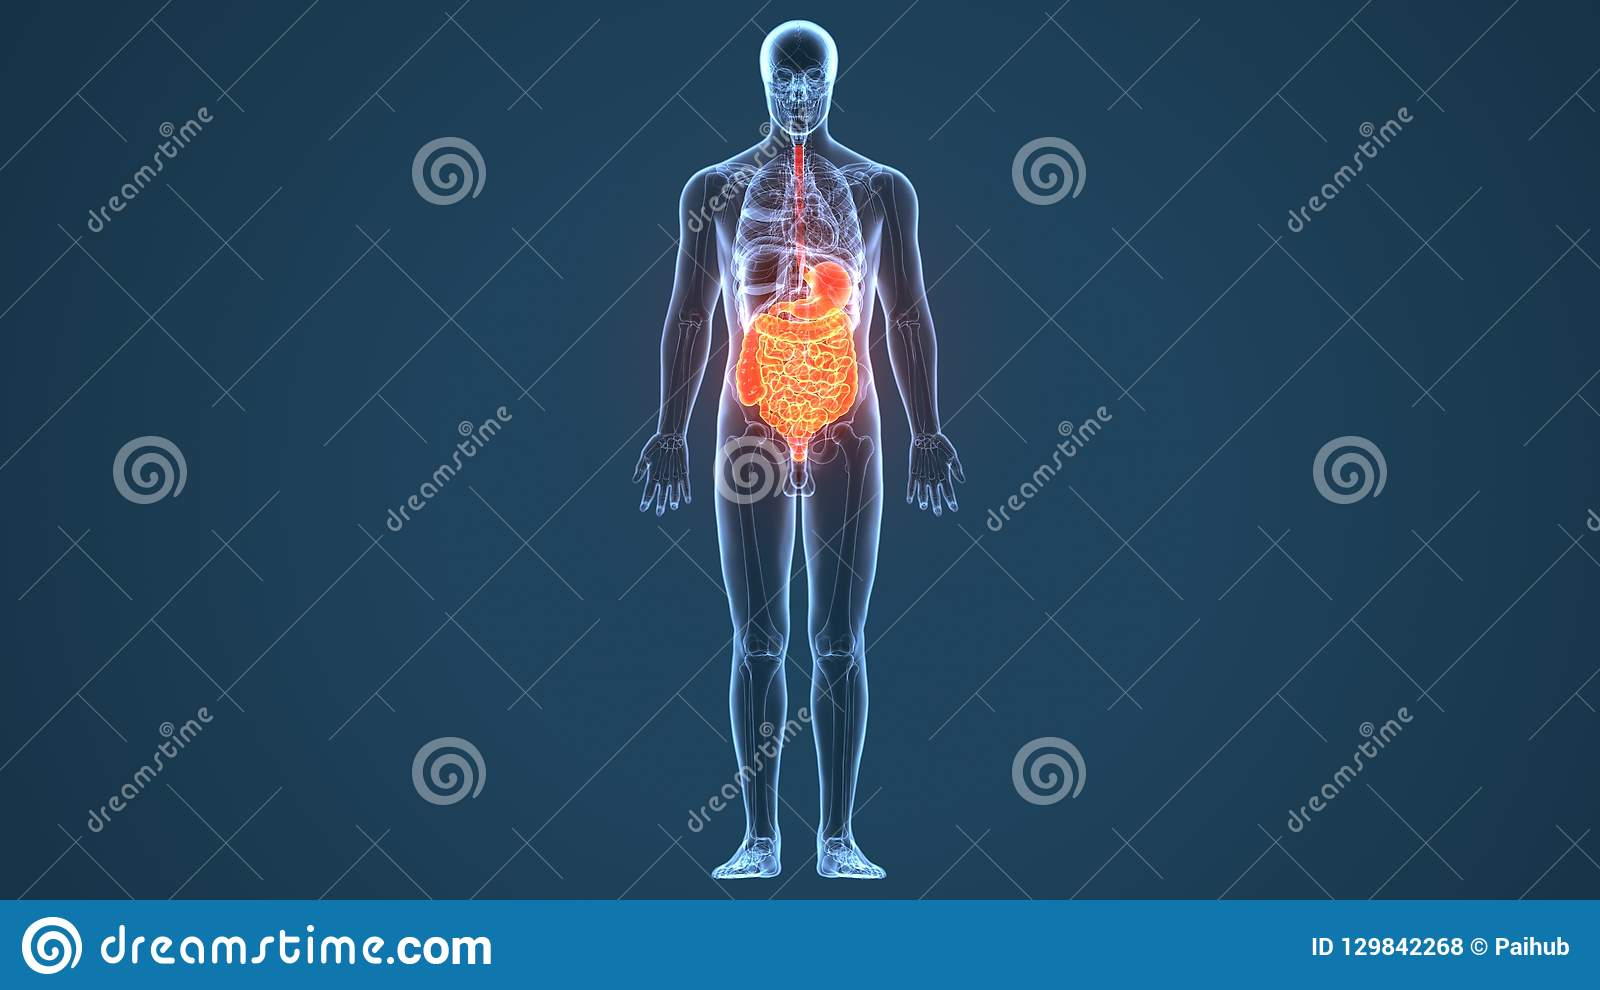 hight resolution of the human digestive system consists of the gastrointestinal tract plus the accessory organs of digestion the tongue salivary glands pancreas liver